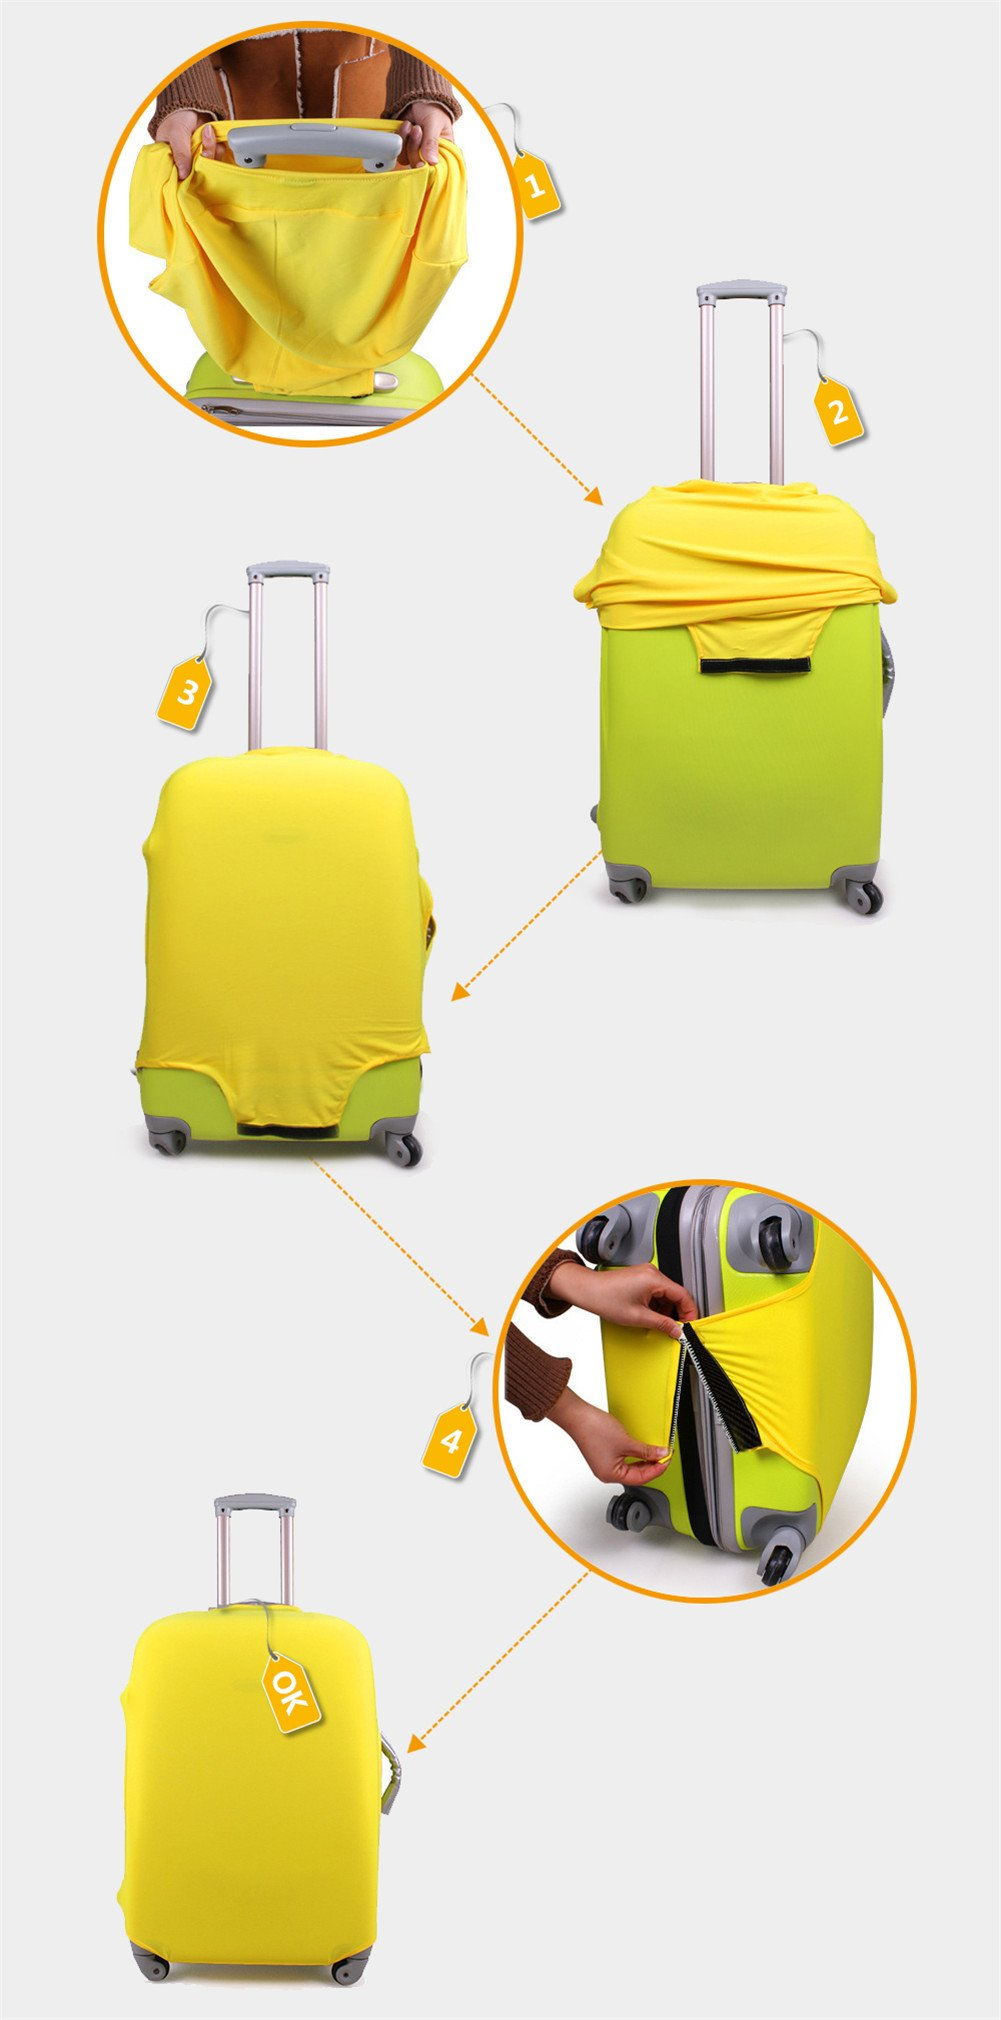 CHAQLIN Travel Rolling Luggage Cover New Design Luggage Sets Suitcase Cover 22-24inch Luggage by CHAQLIN (Image #4)